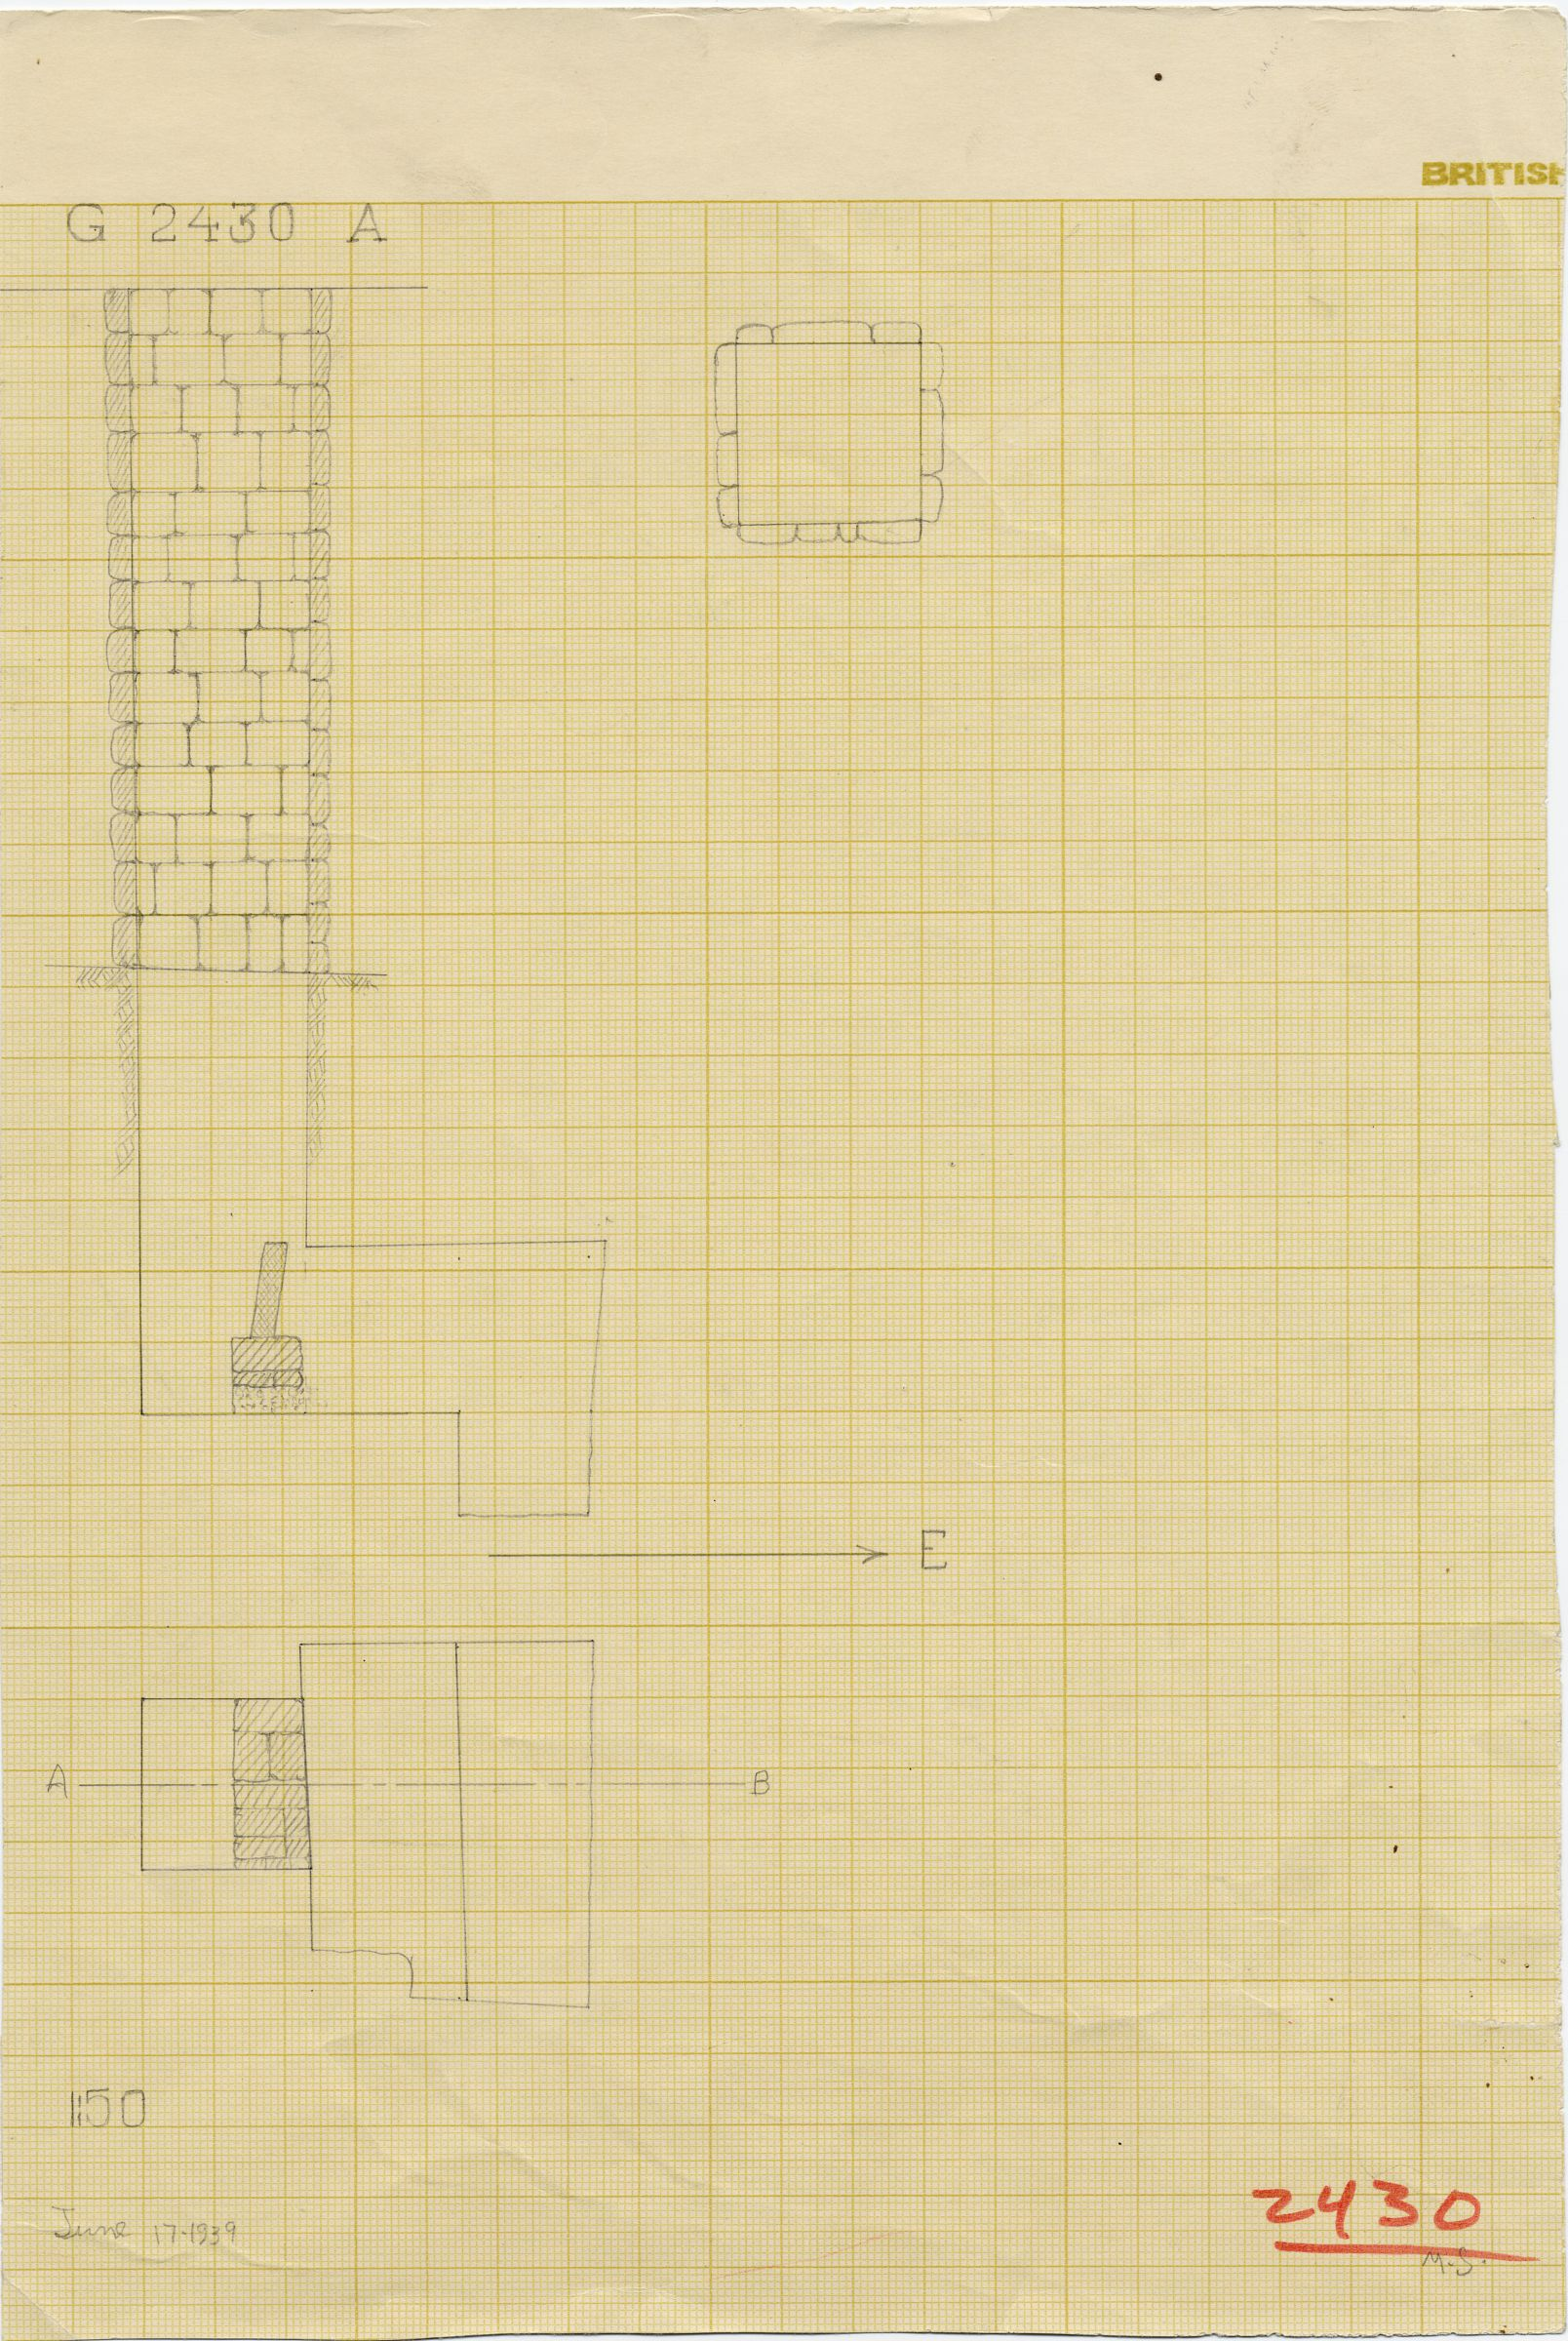 Maps and plans: G 2430, Shaft A